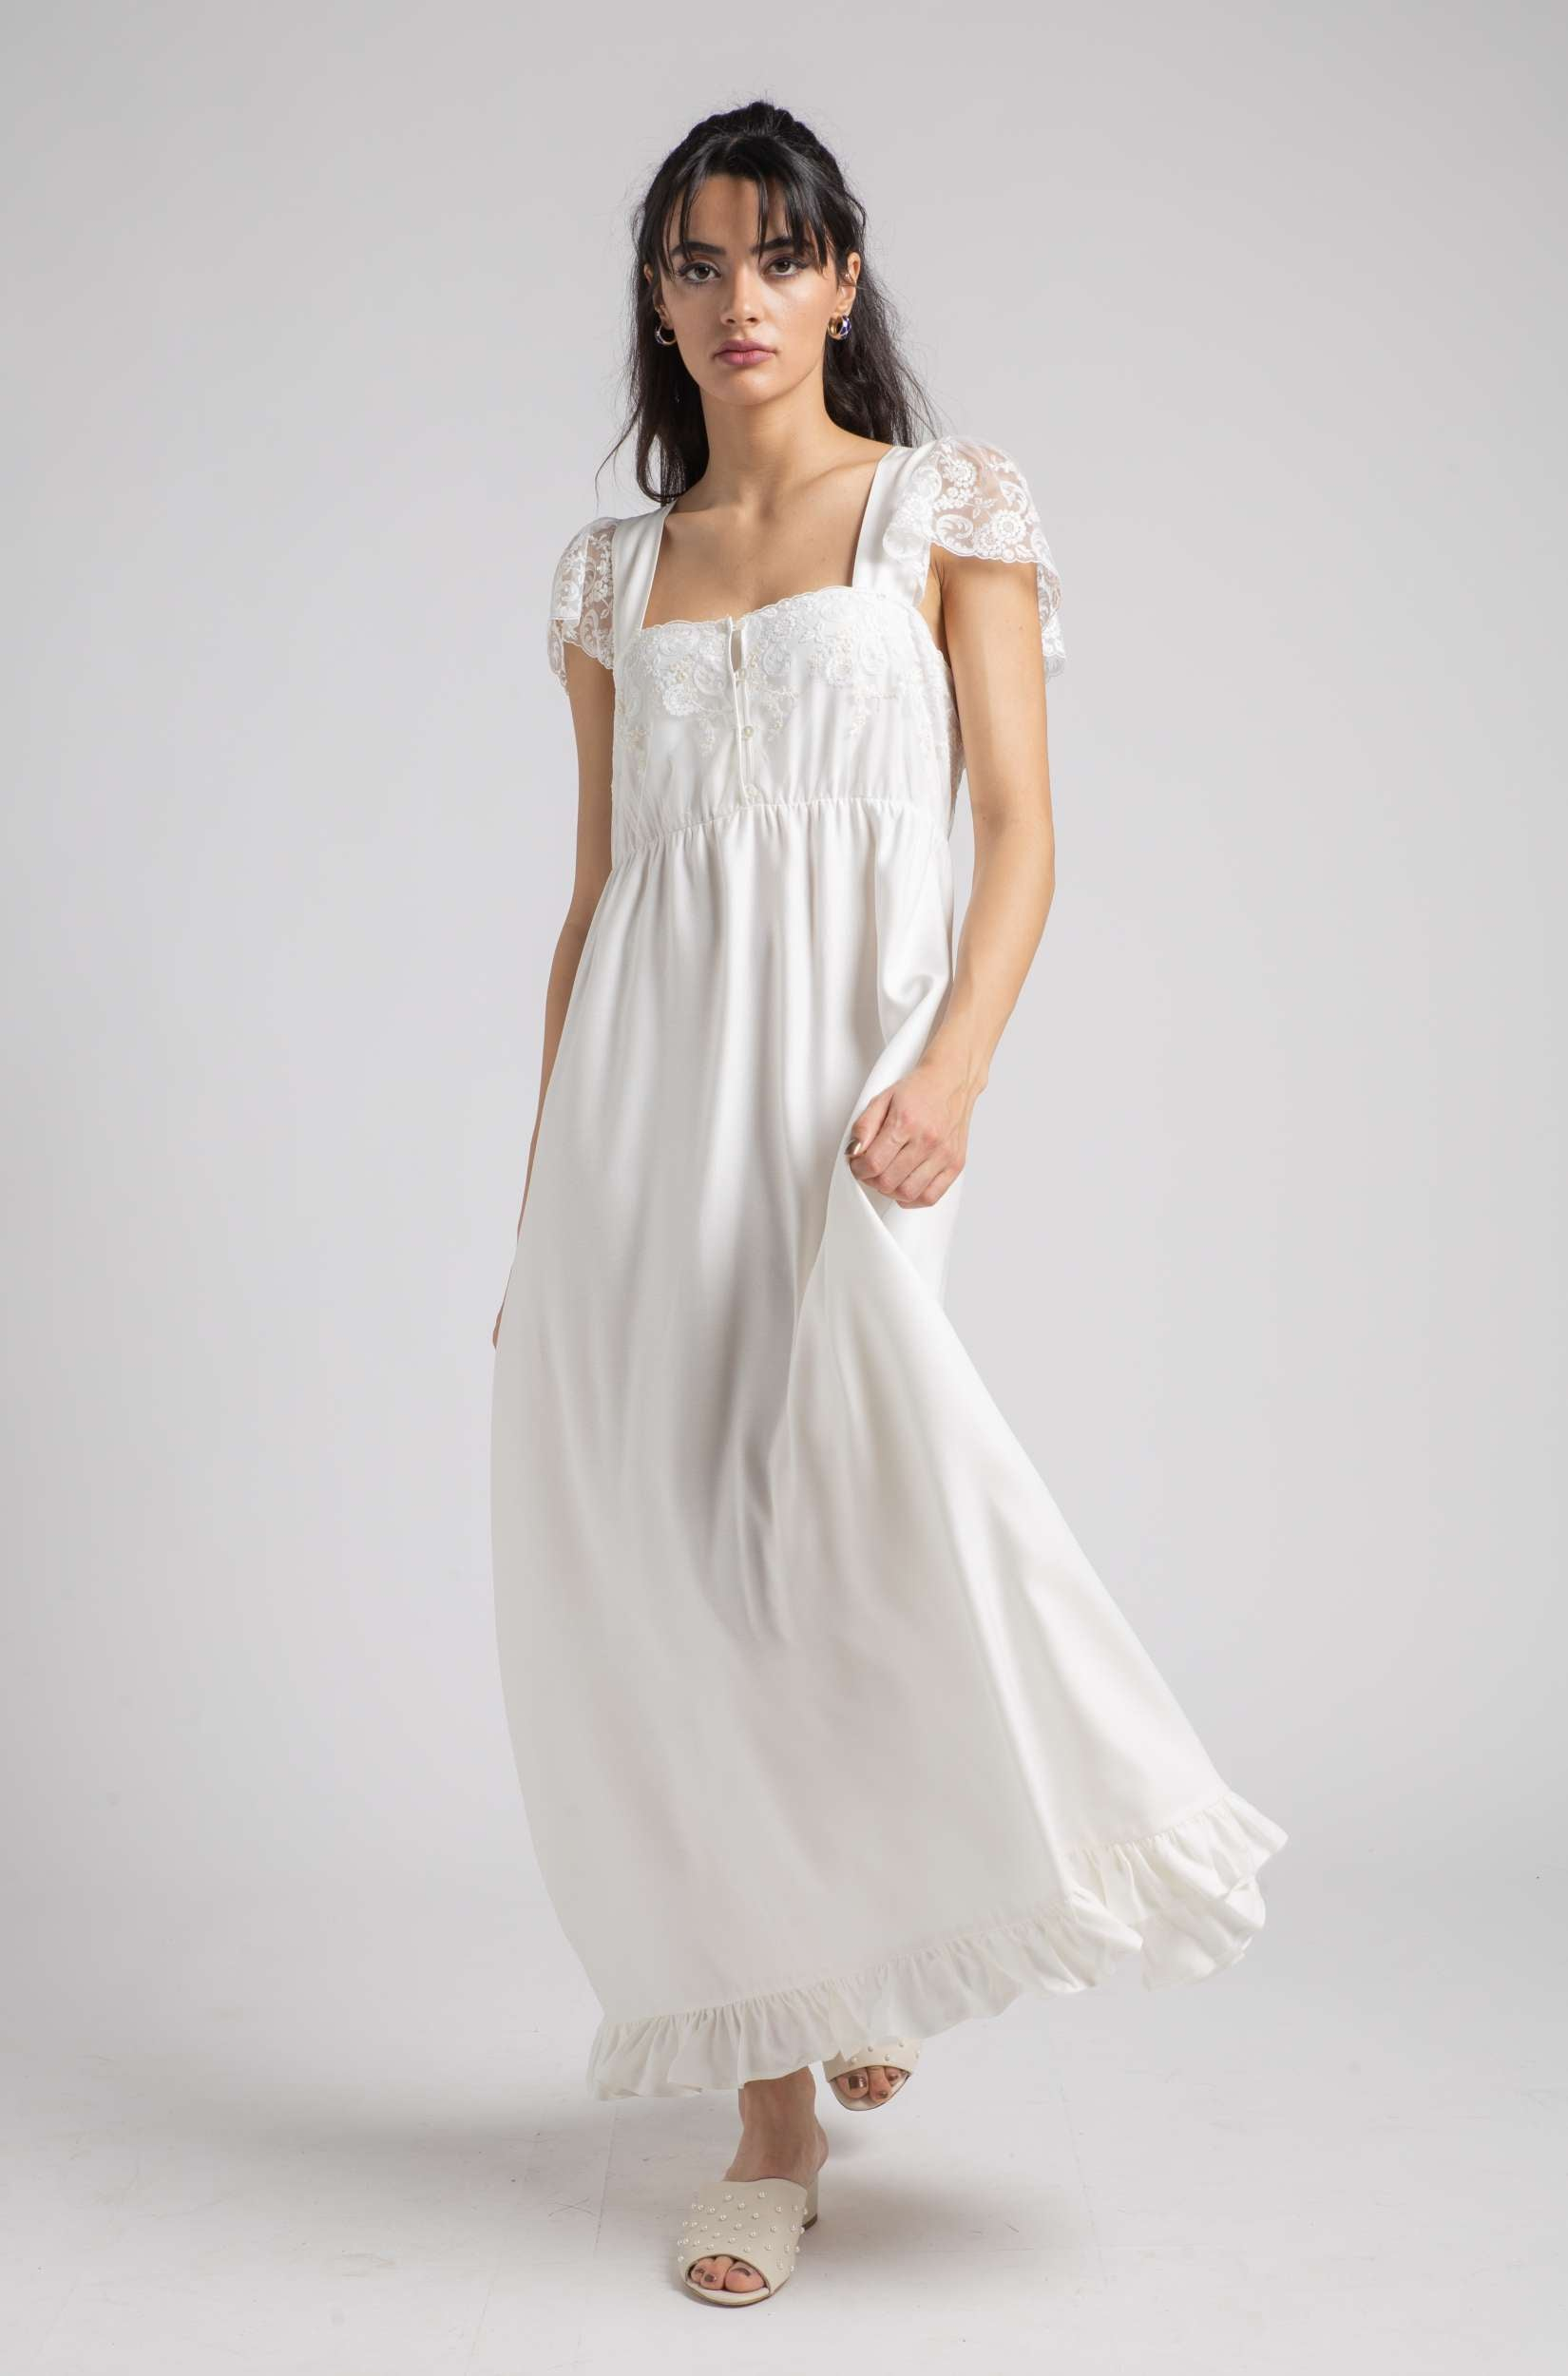 Wilma Nightie - Off White Ruffled Sunkissed